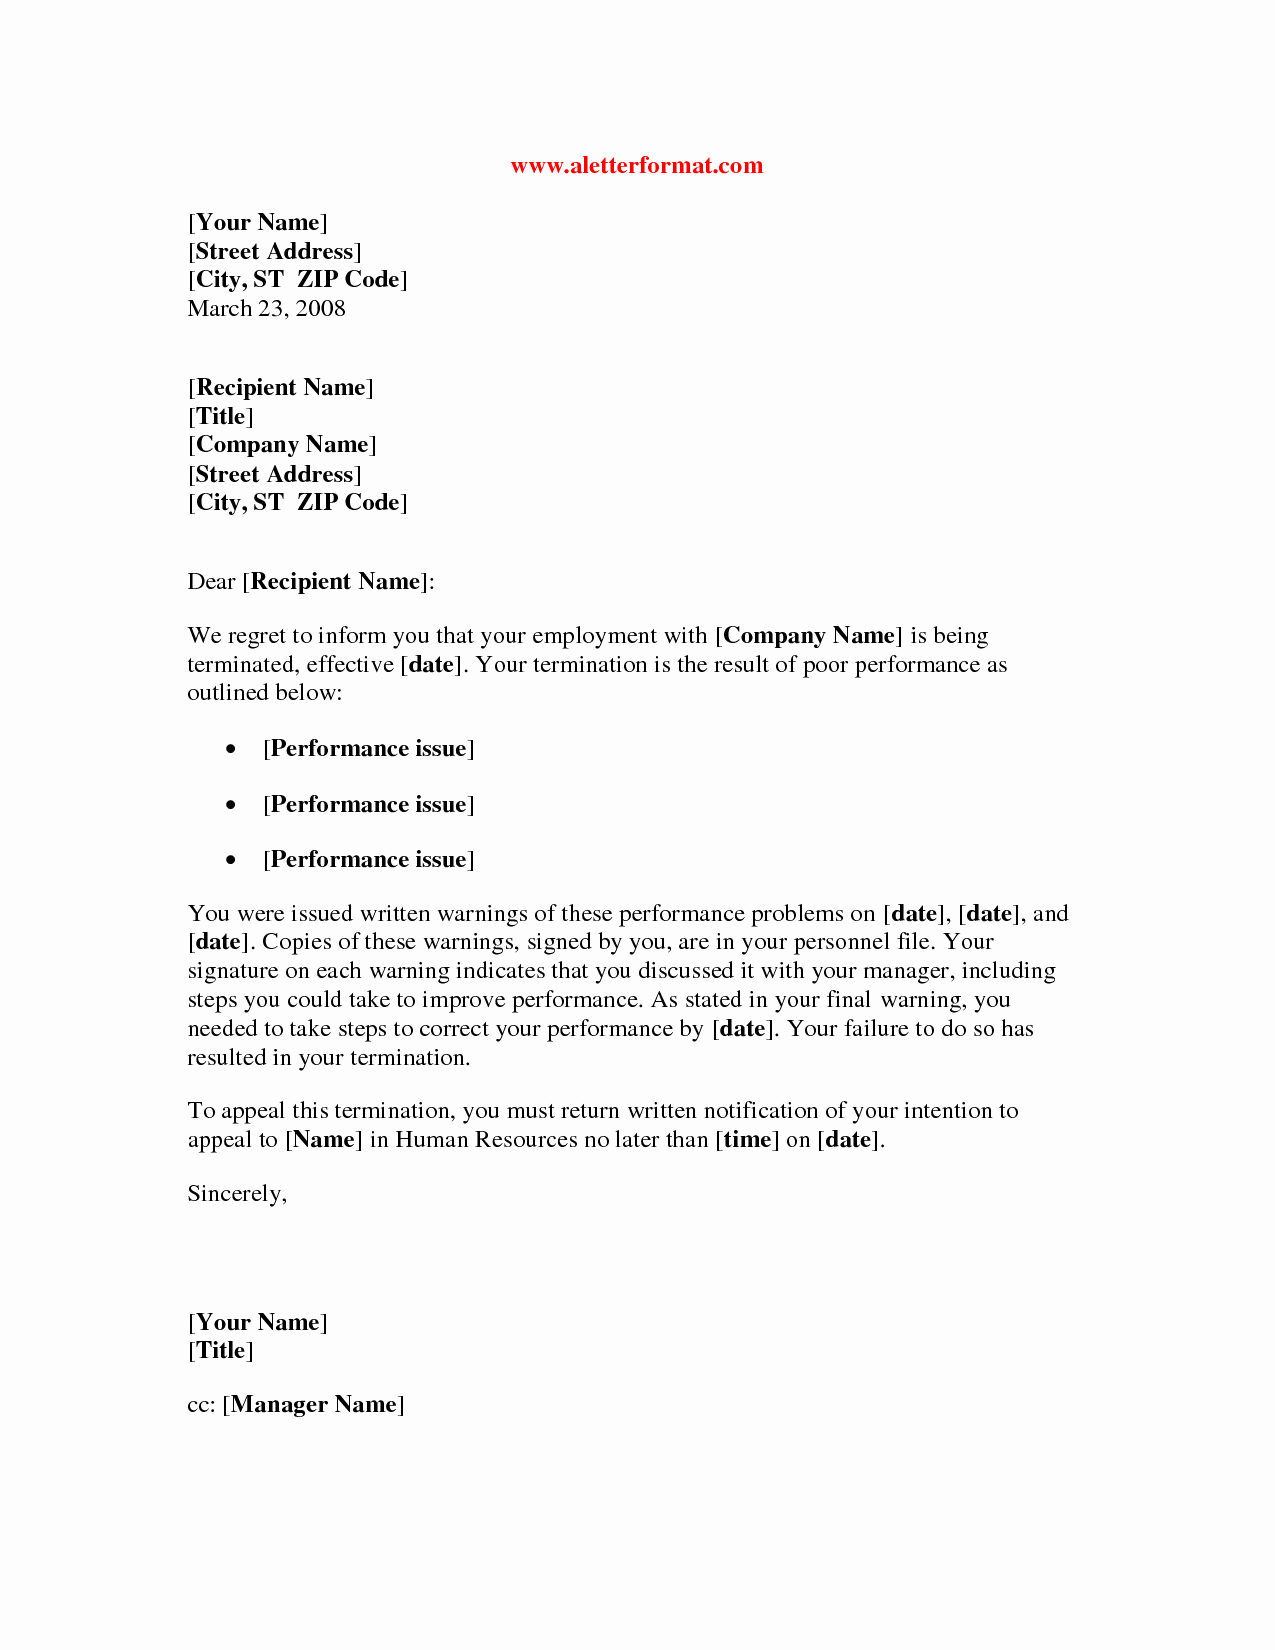 Employee Termination Letter Sample Awesome Termination Letter Poor Performance